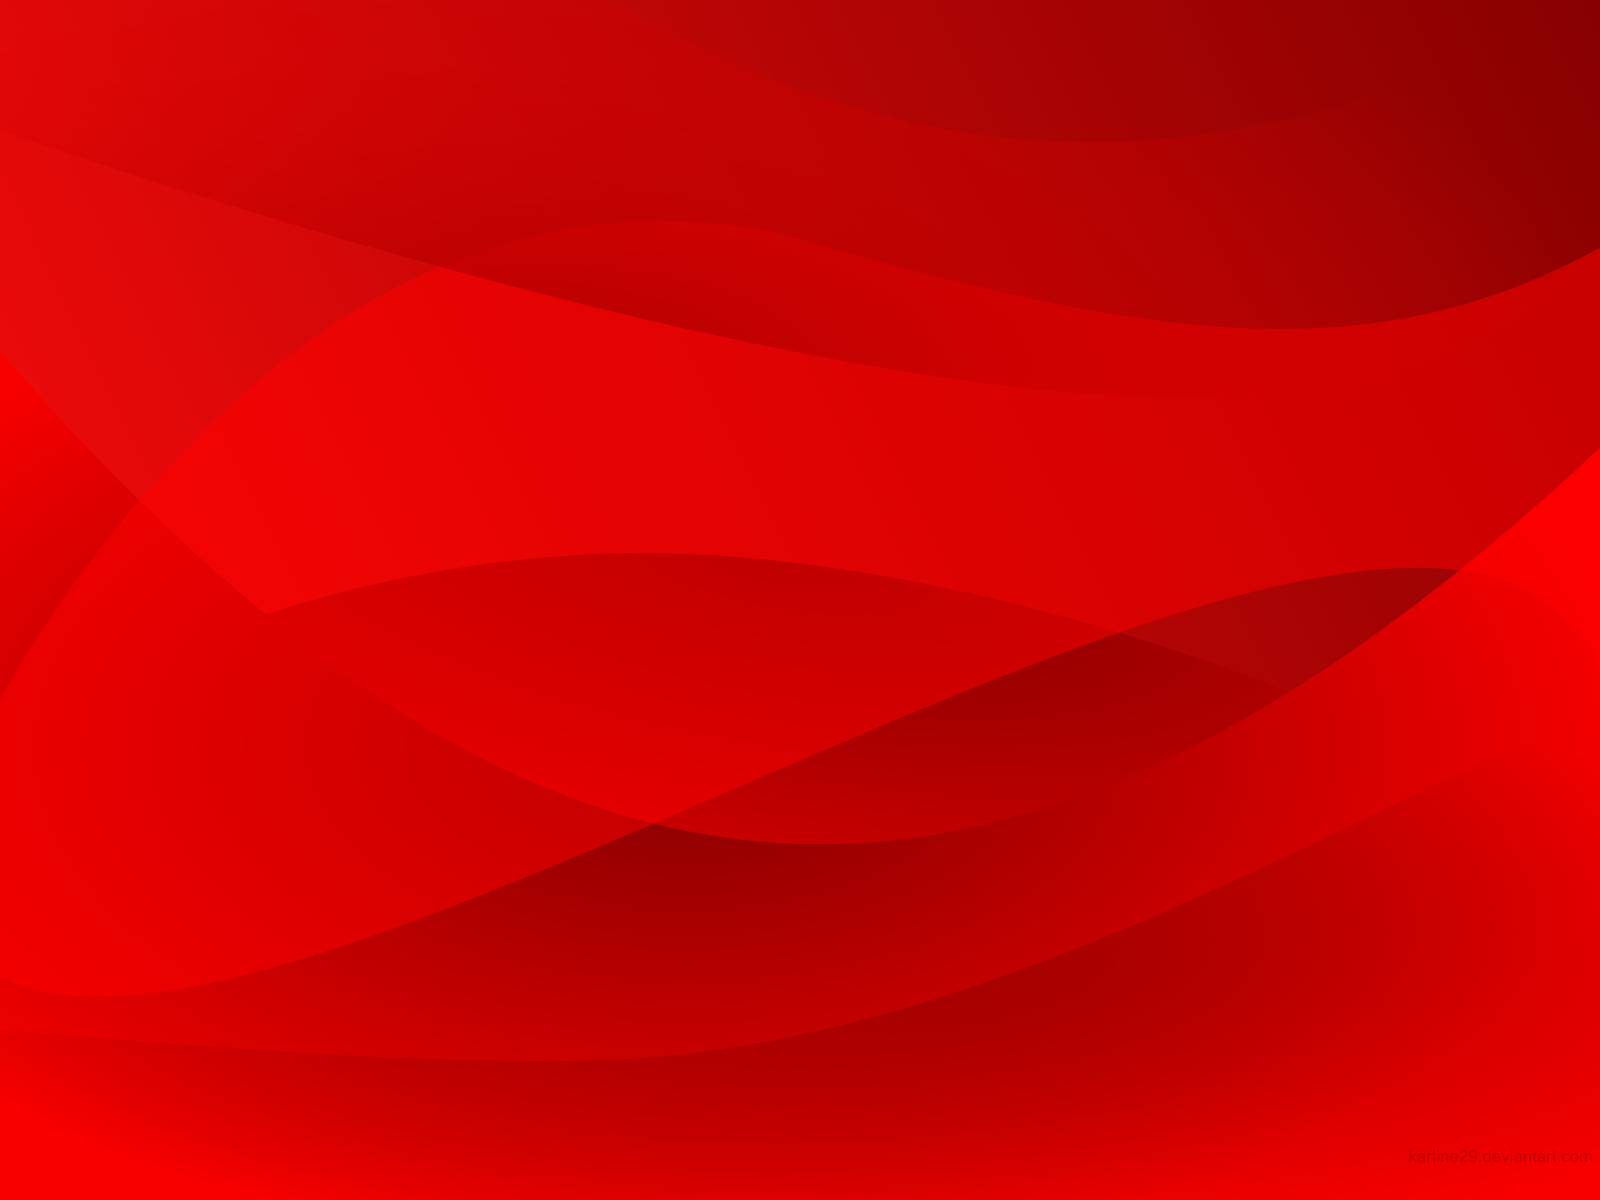 red_abstract_1600x1200_by_kartine29